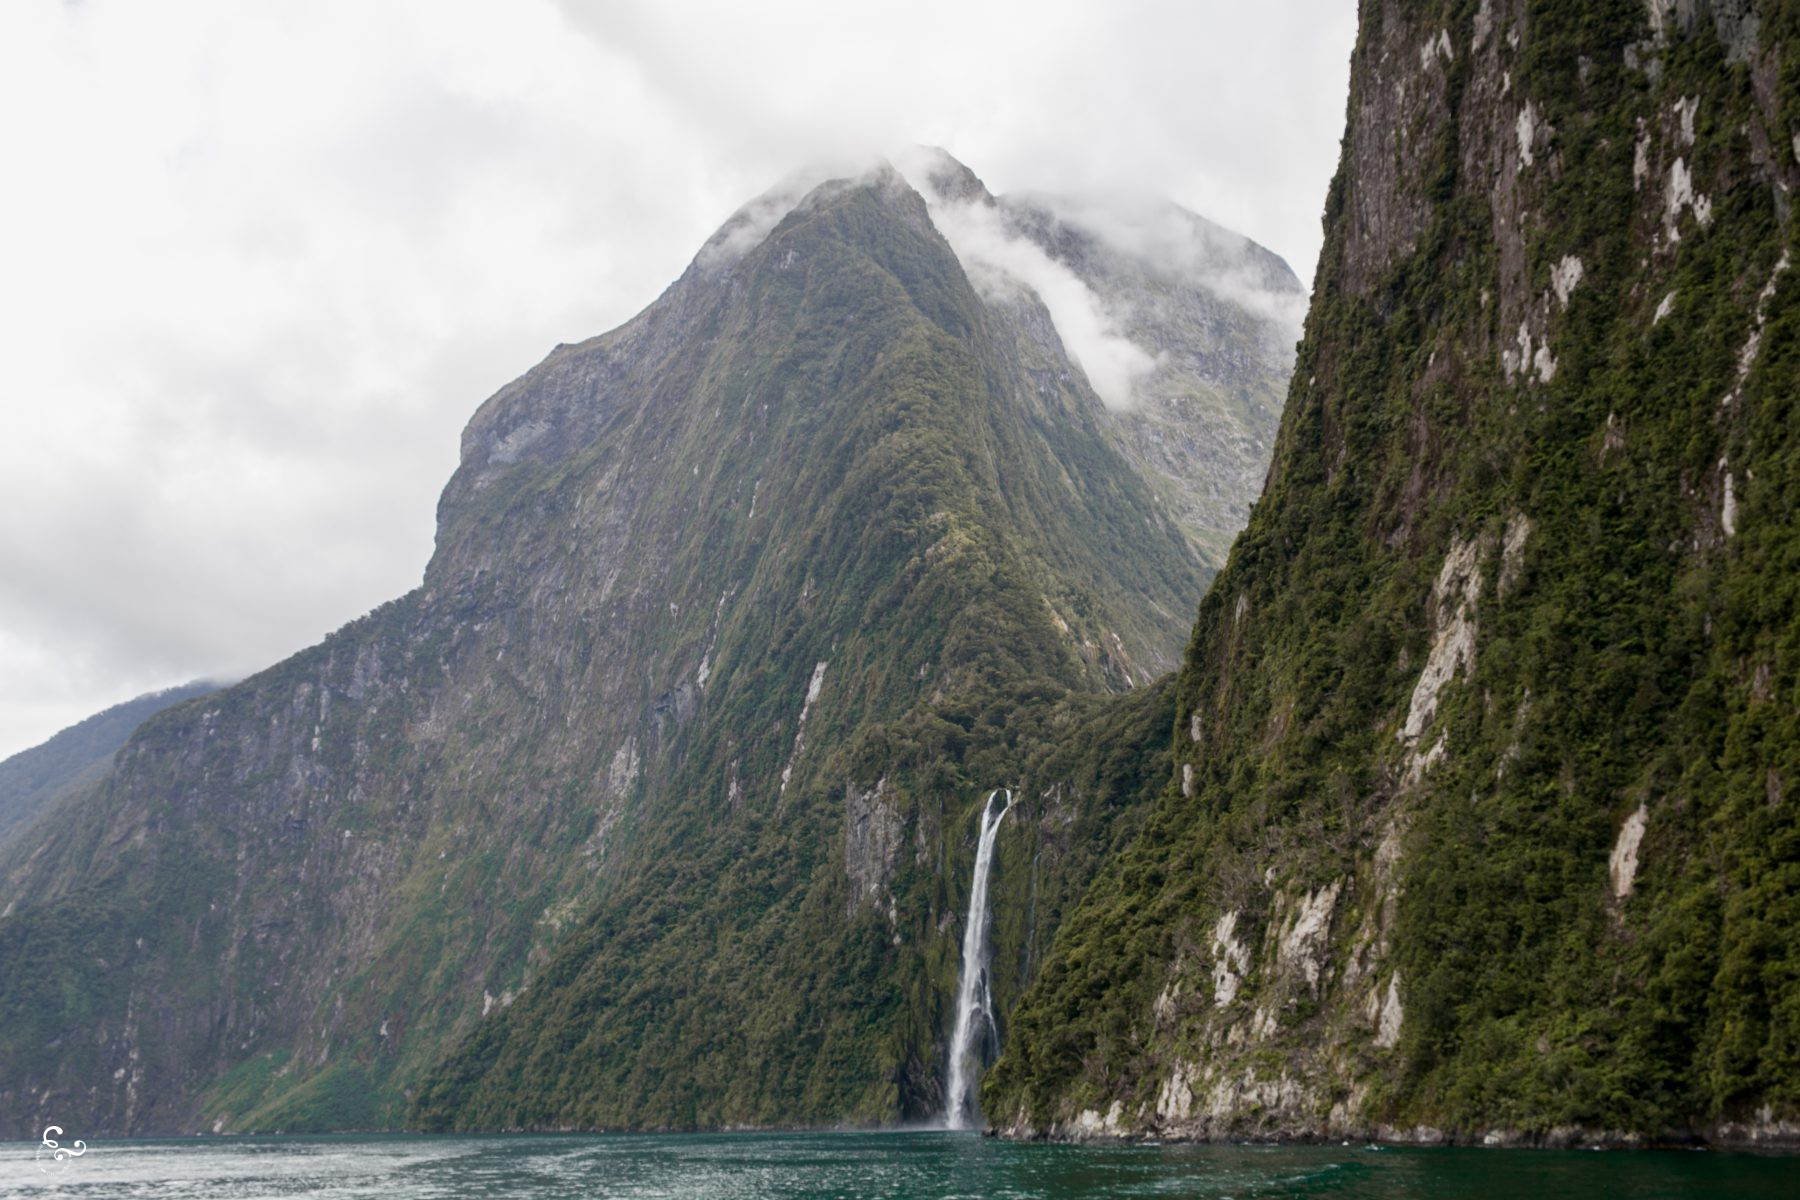 Milford Sound Waterfalls New Zealand Photography Lis Dingjan Nowhere & Everywhere Travel Sustainability Free Range Pixels Blog